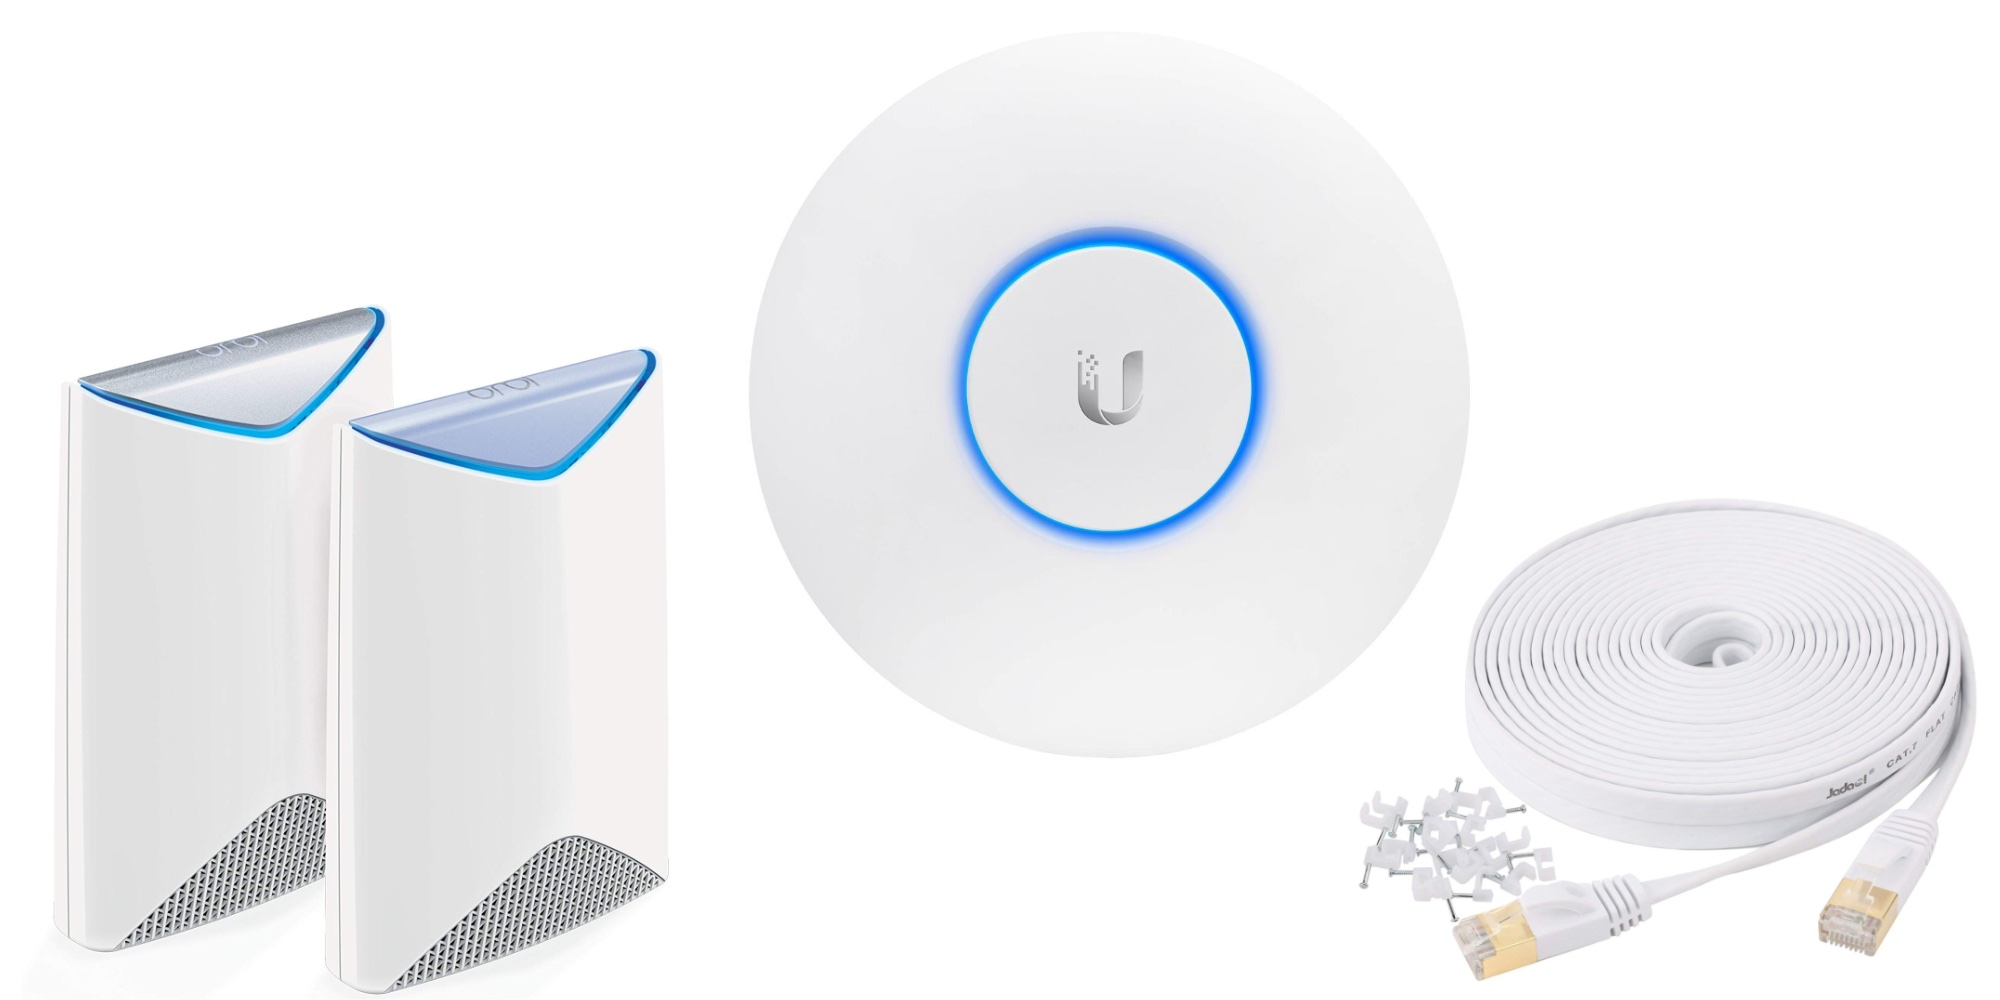 Home networking: Ubiquiti UniFi AC Lite + $10 GC at $80 ($100 value), more from $5